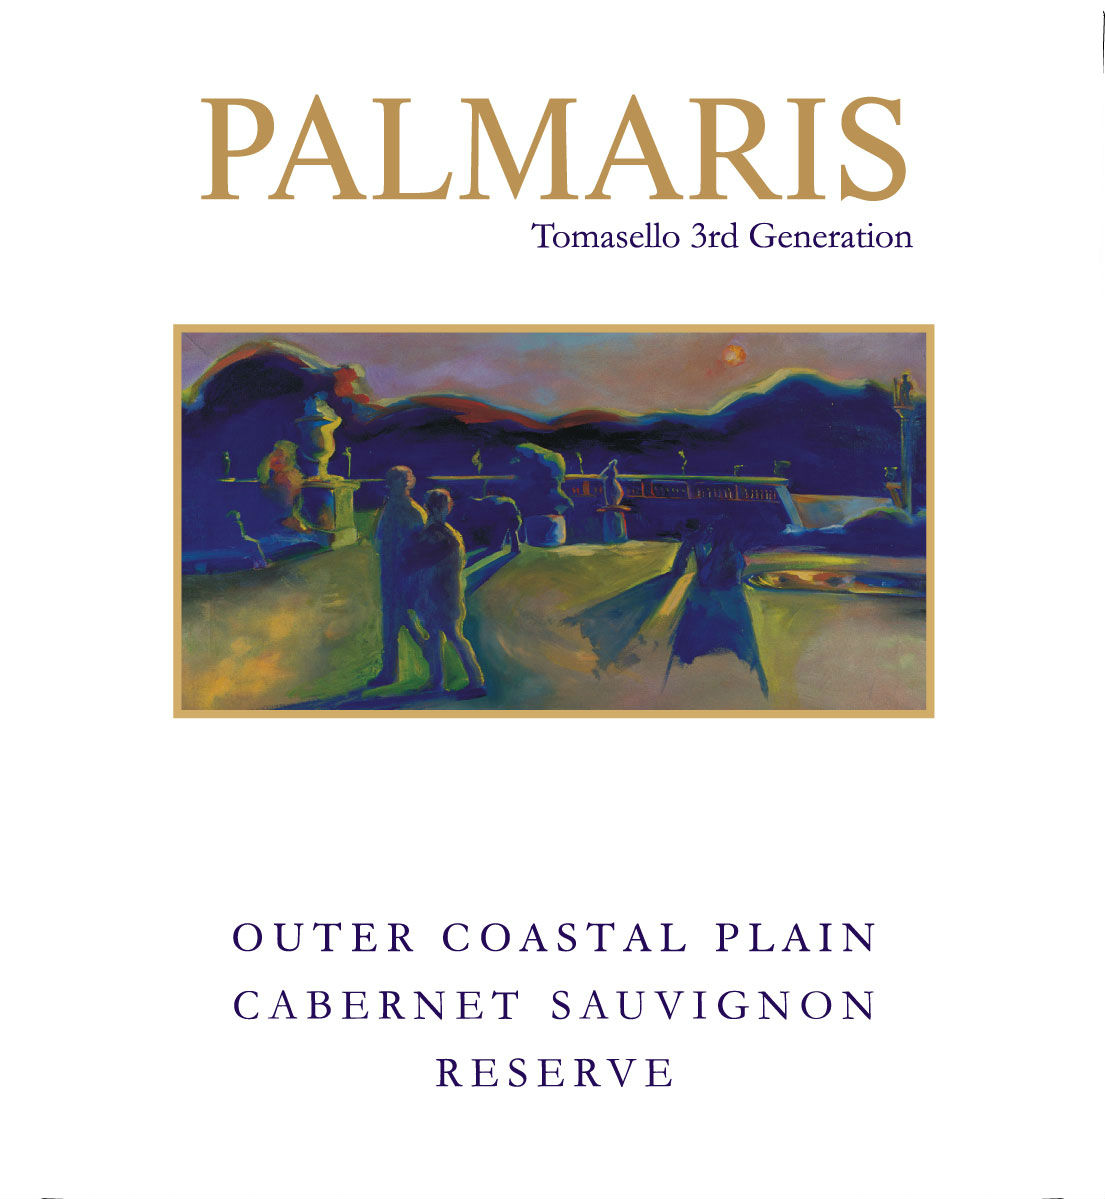 Product Image for Palmaris 2010 Outer Coastal Plain Cabernet Sauvig Res Magnum